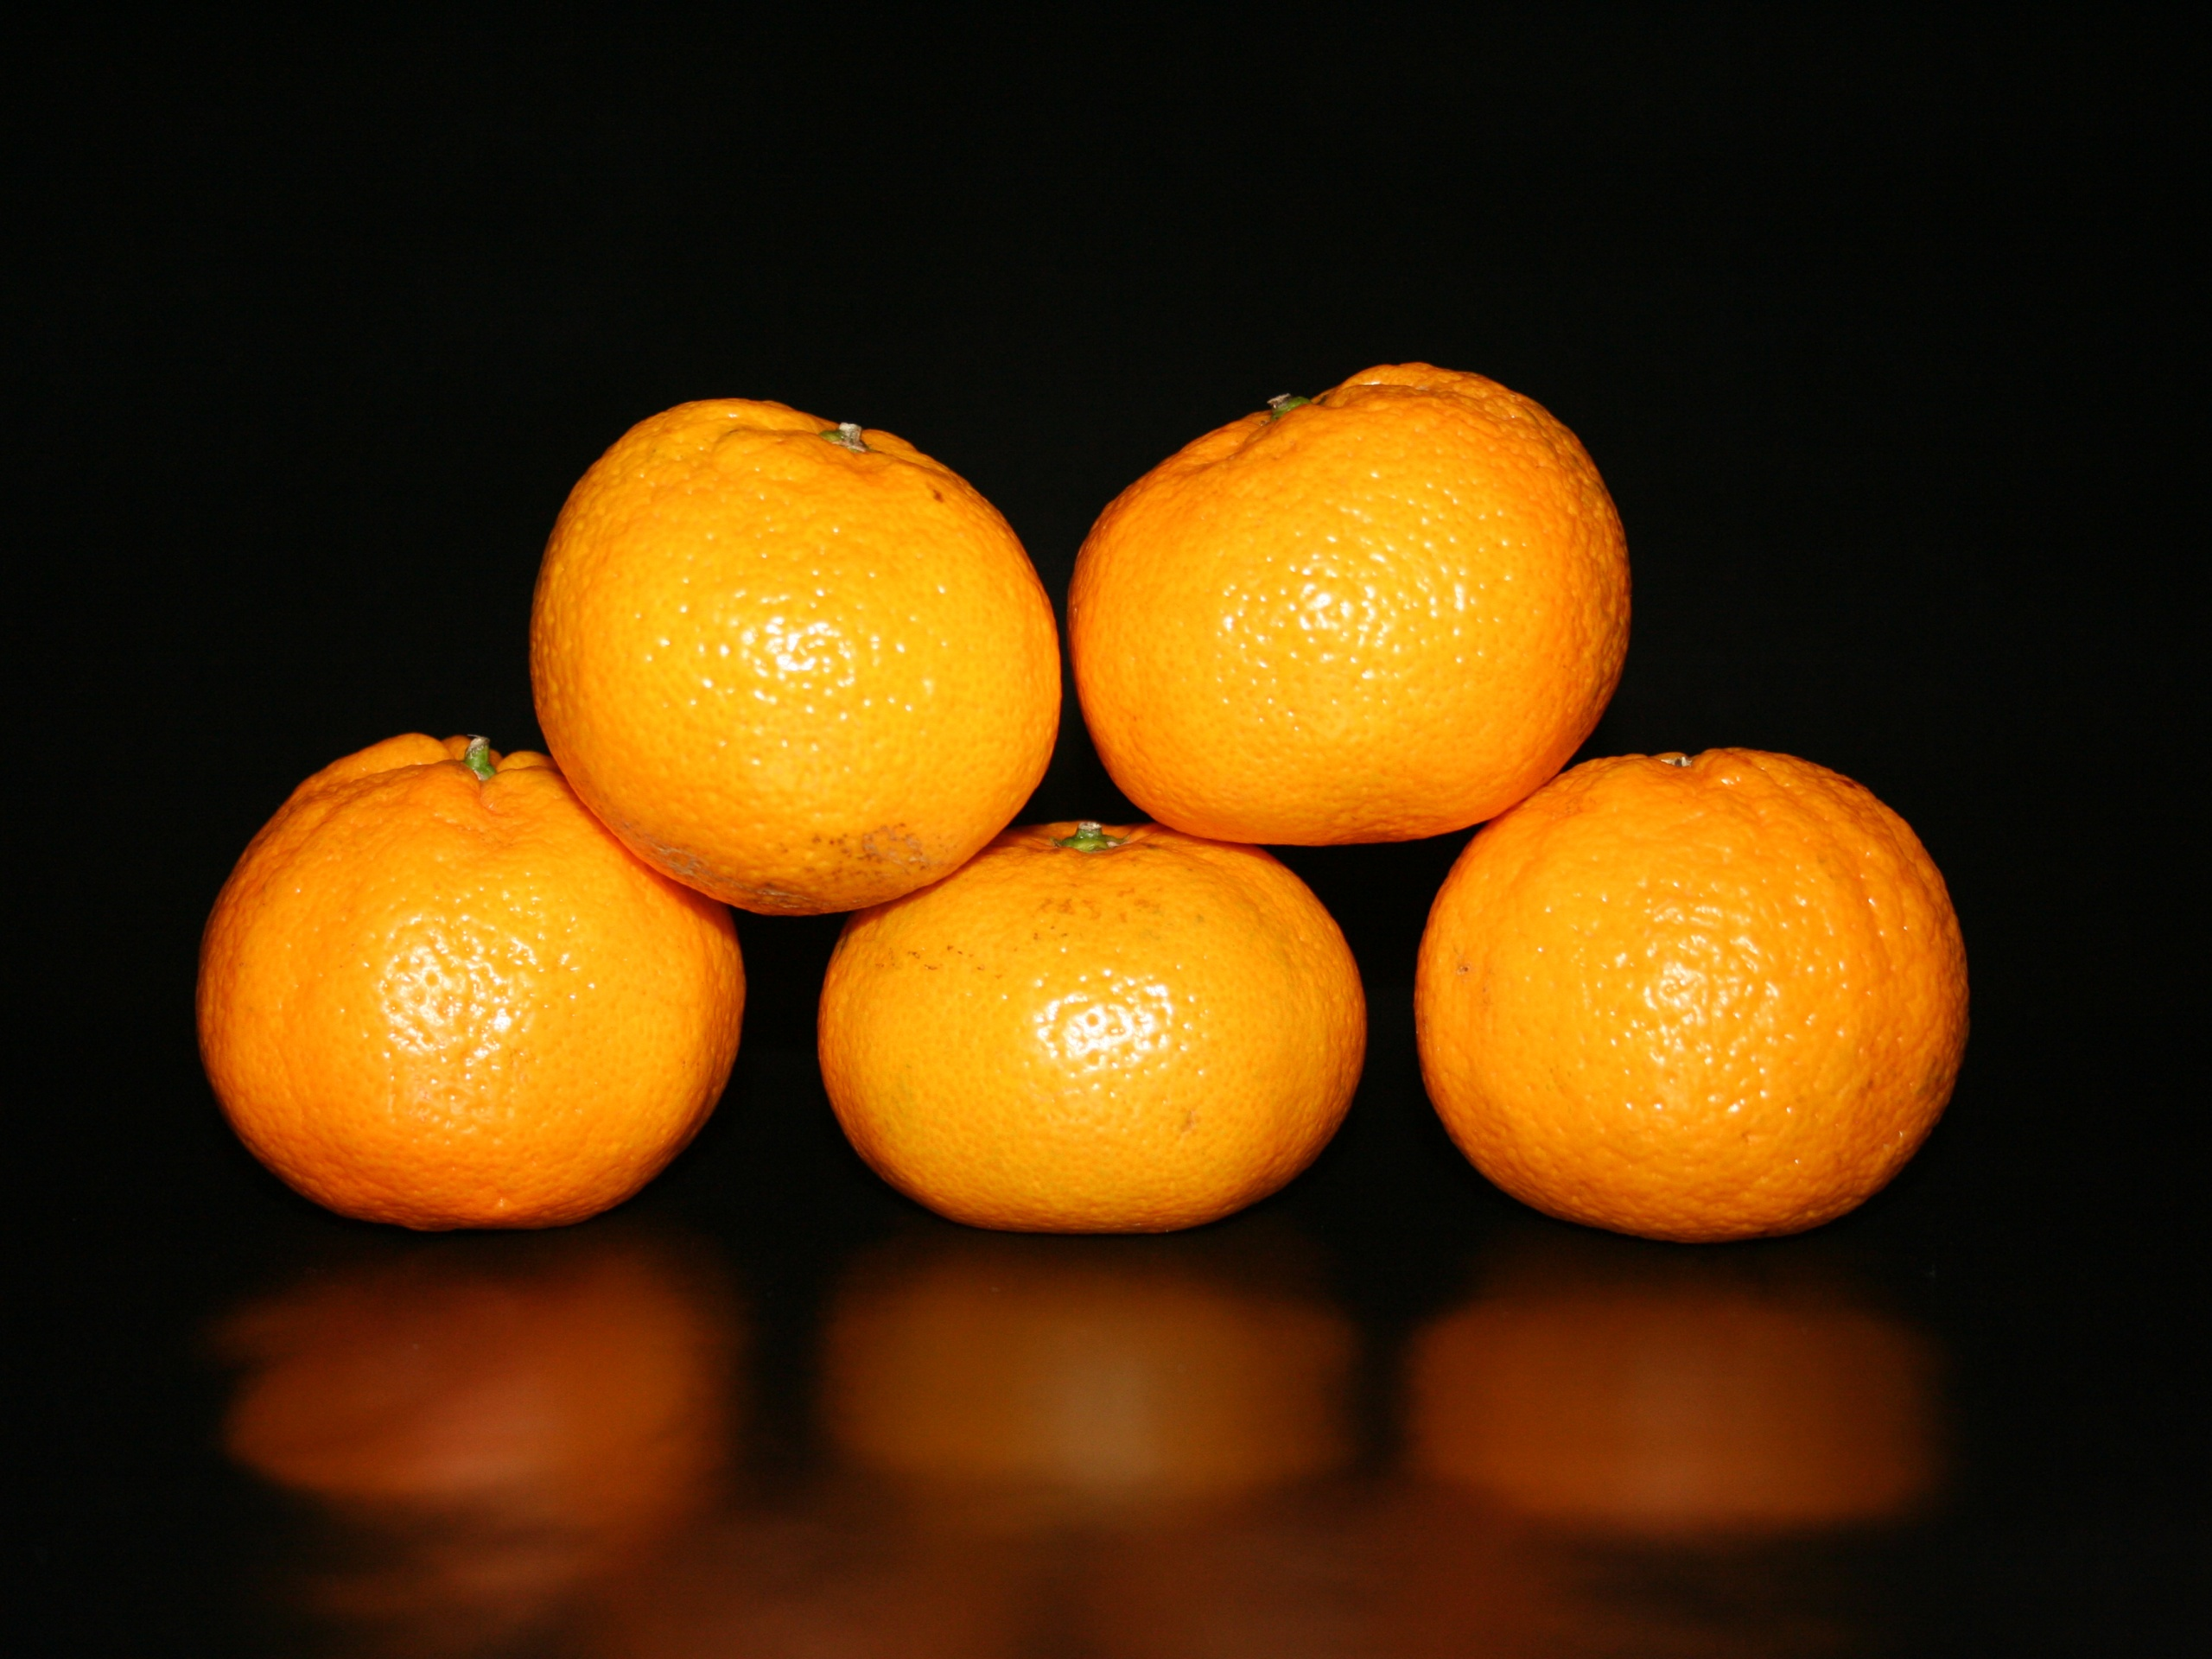 click to free download the wallpaper--Fresh Fruits Image, Five Oranges, Freshly Picked, Glowing Effect 2560X1920 free wallpaper download